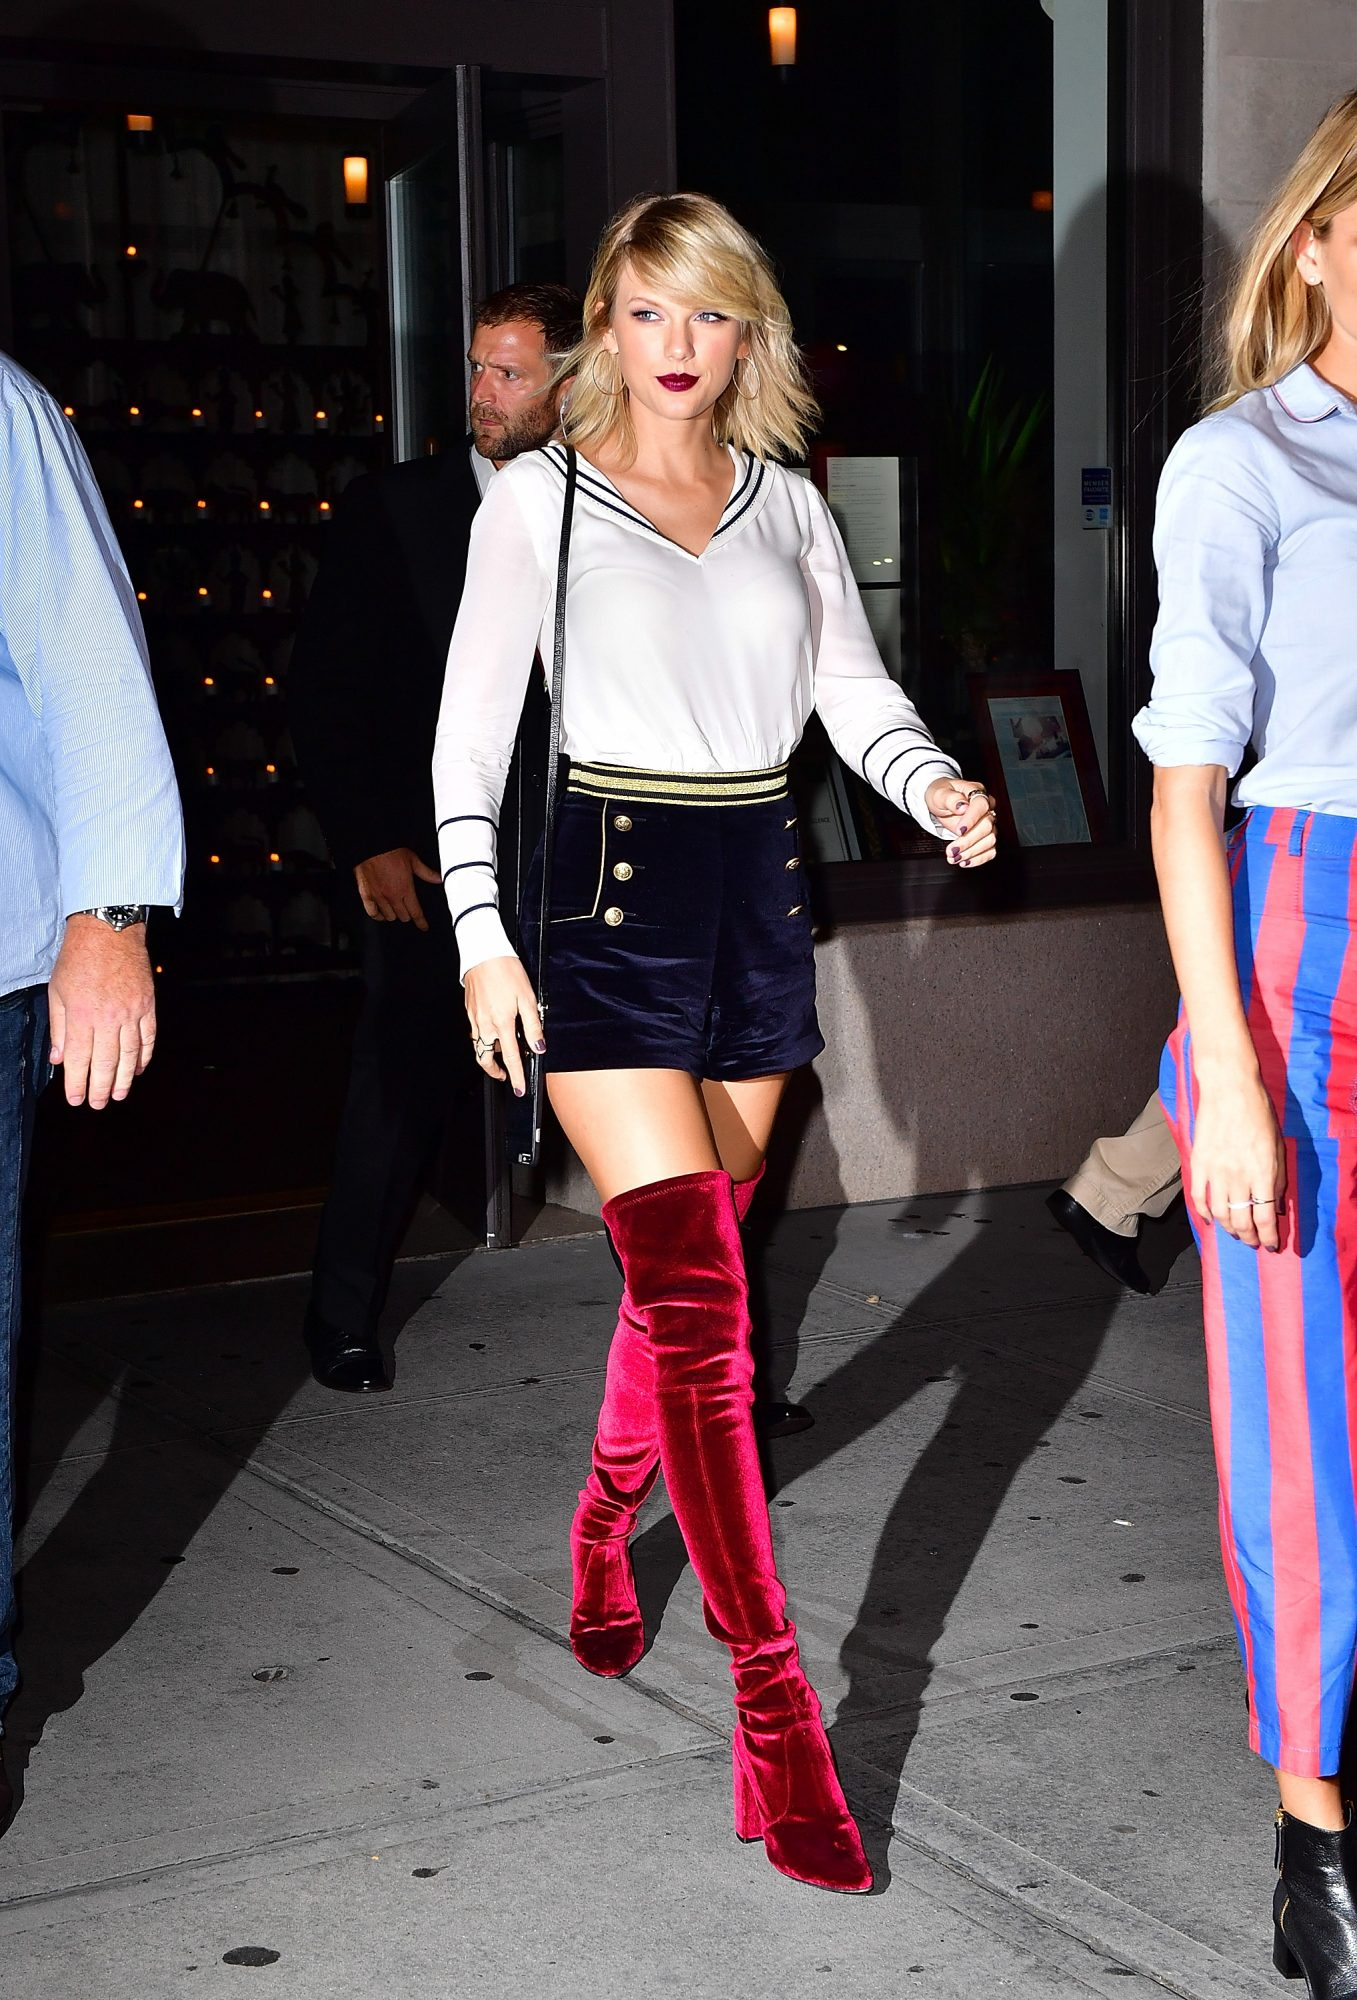 picture-of-taylor-swift-nautical-outfit-photo.jpg